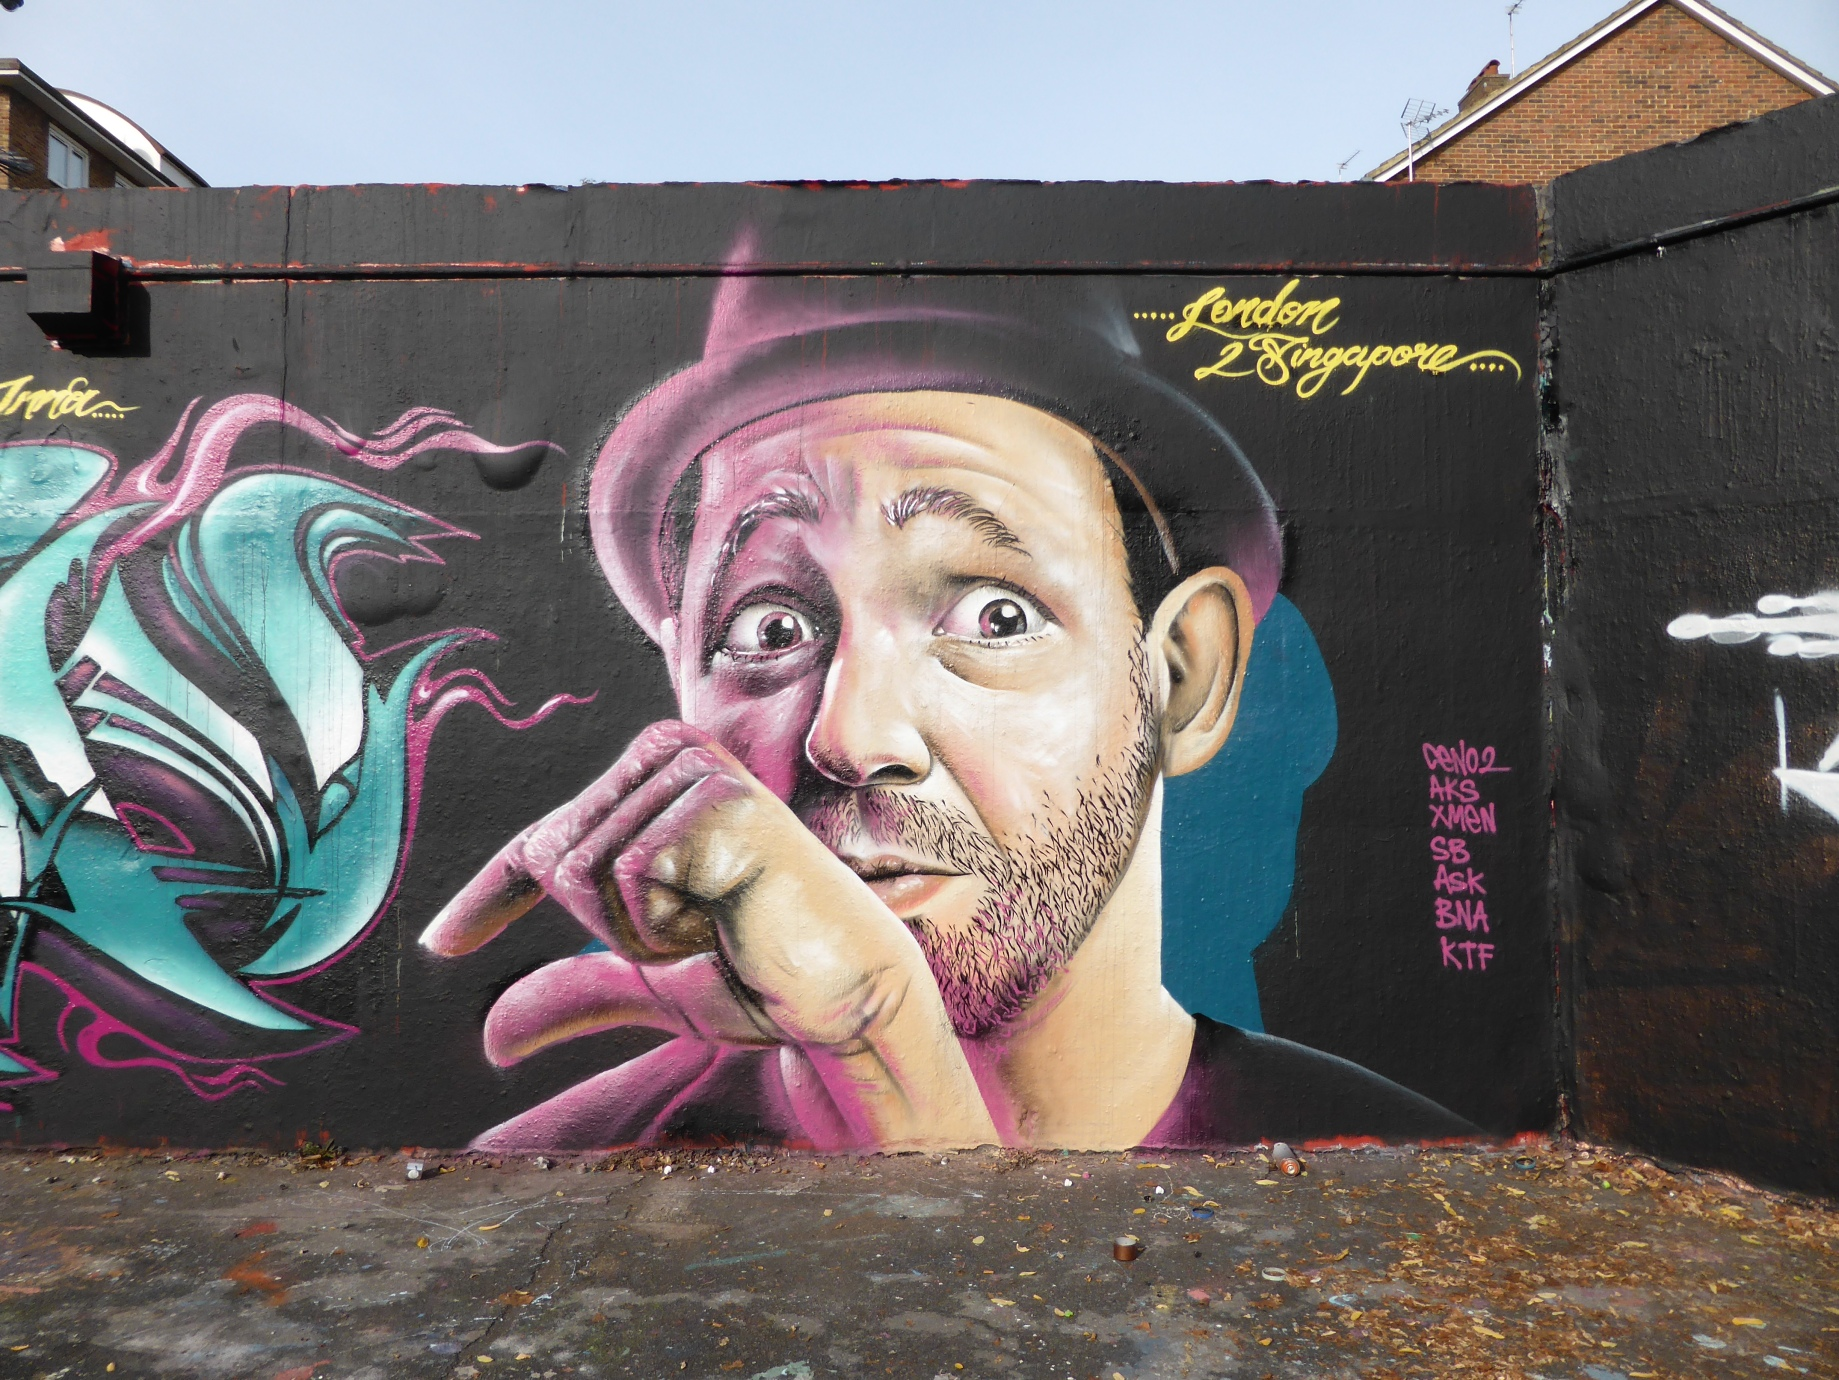 Grafitti fine art 2015 - Singaporean Graffiti Fine Artist Ceno2 Hits London